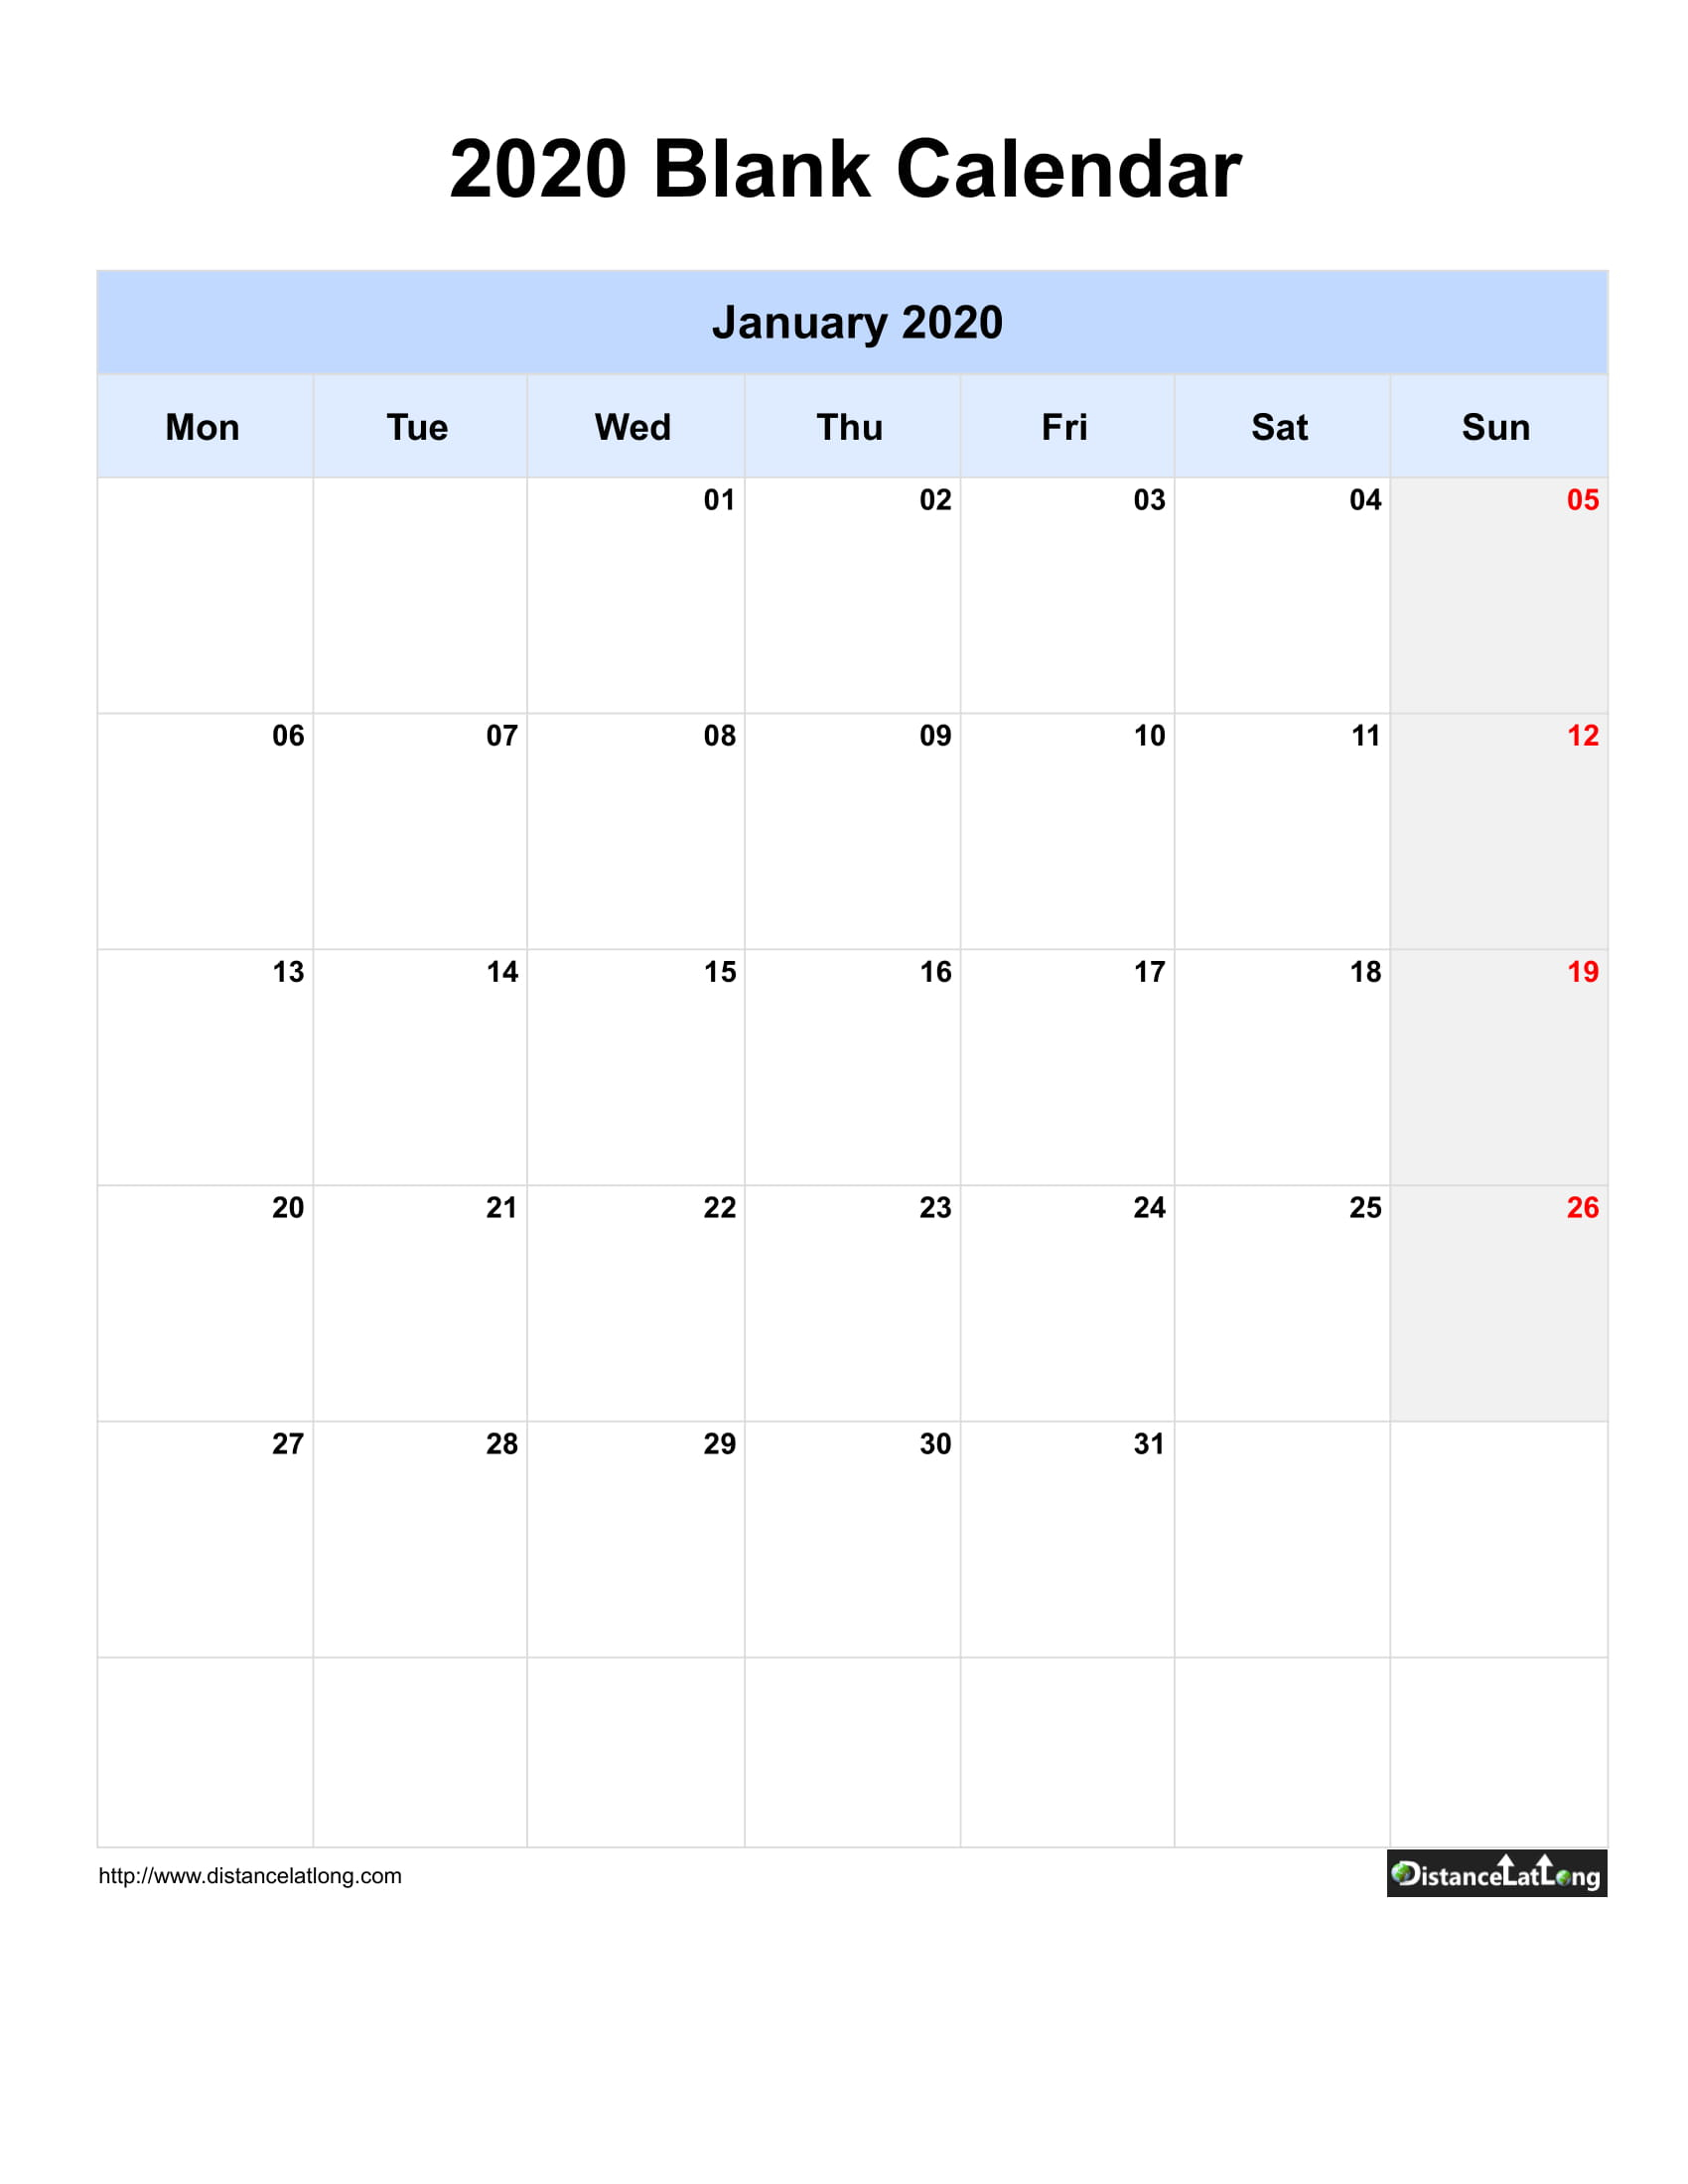 2020 Blank Calendar Blank Portrait Orientation Free for Blank One Month Calendar